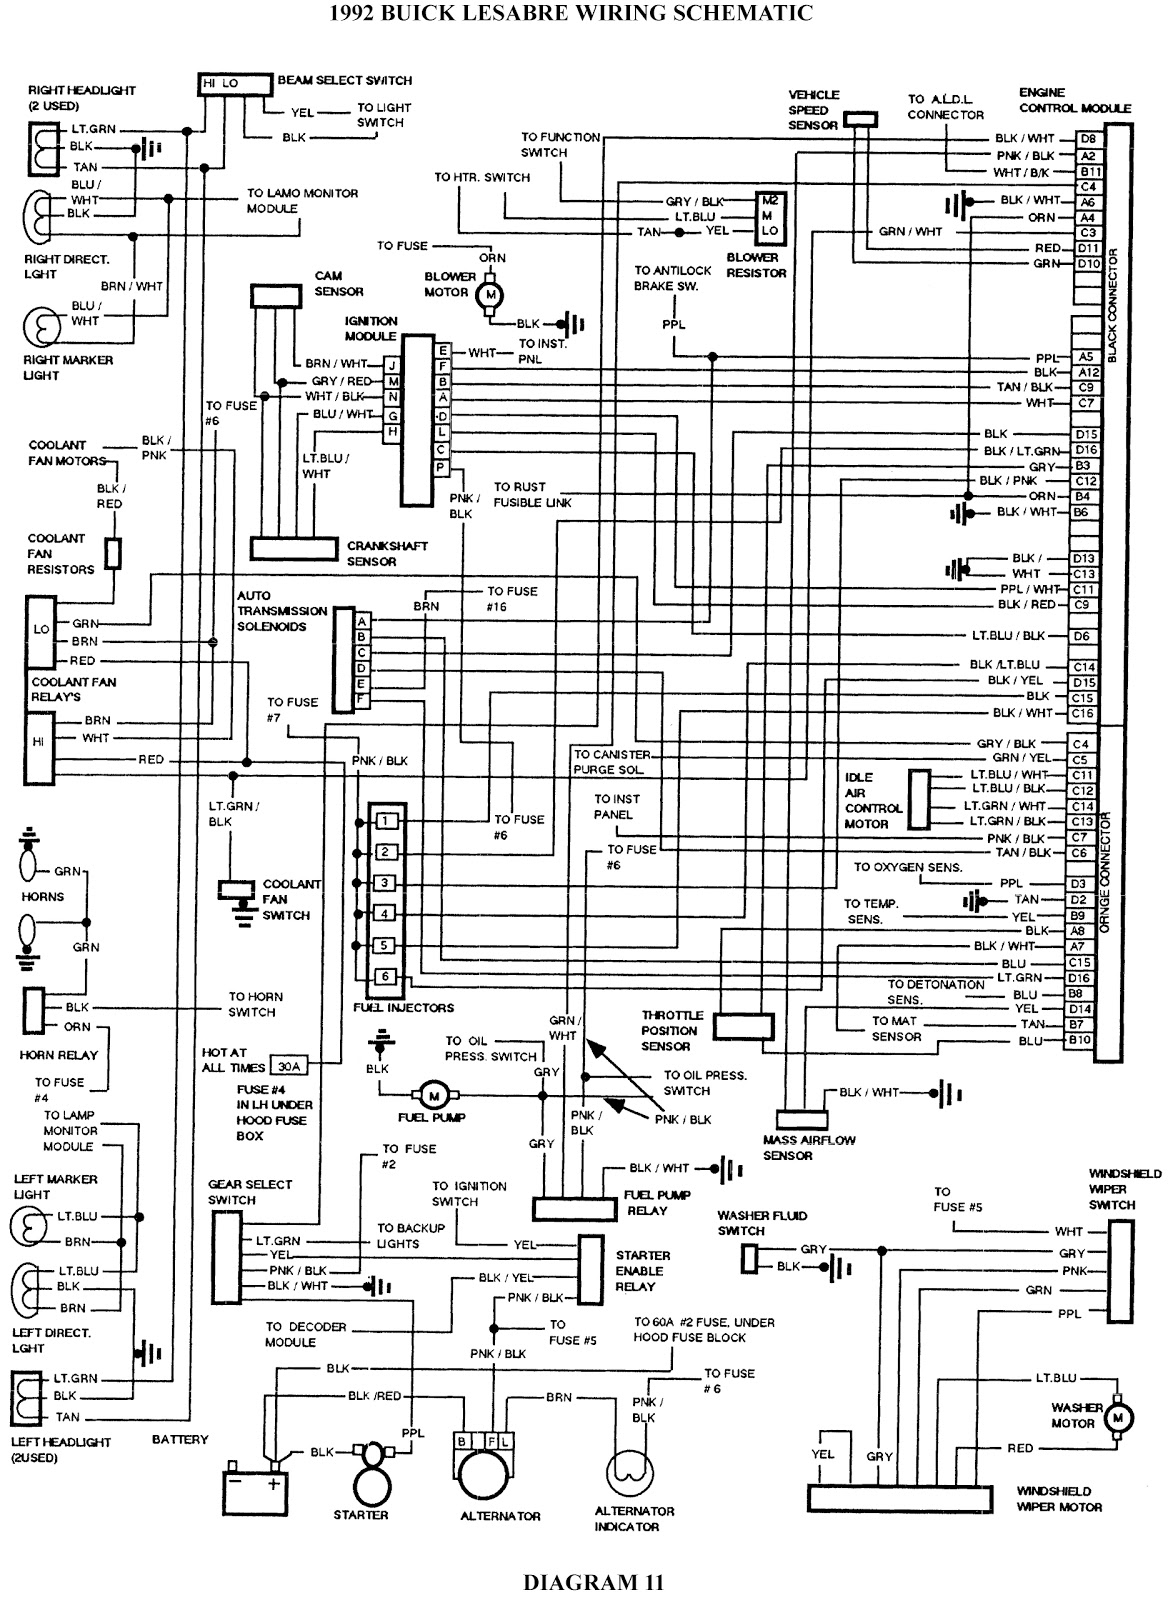 97 05 buick park avenue radio wiring diagram